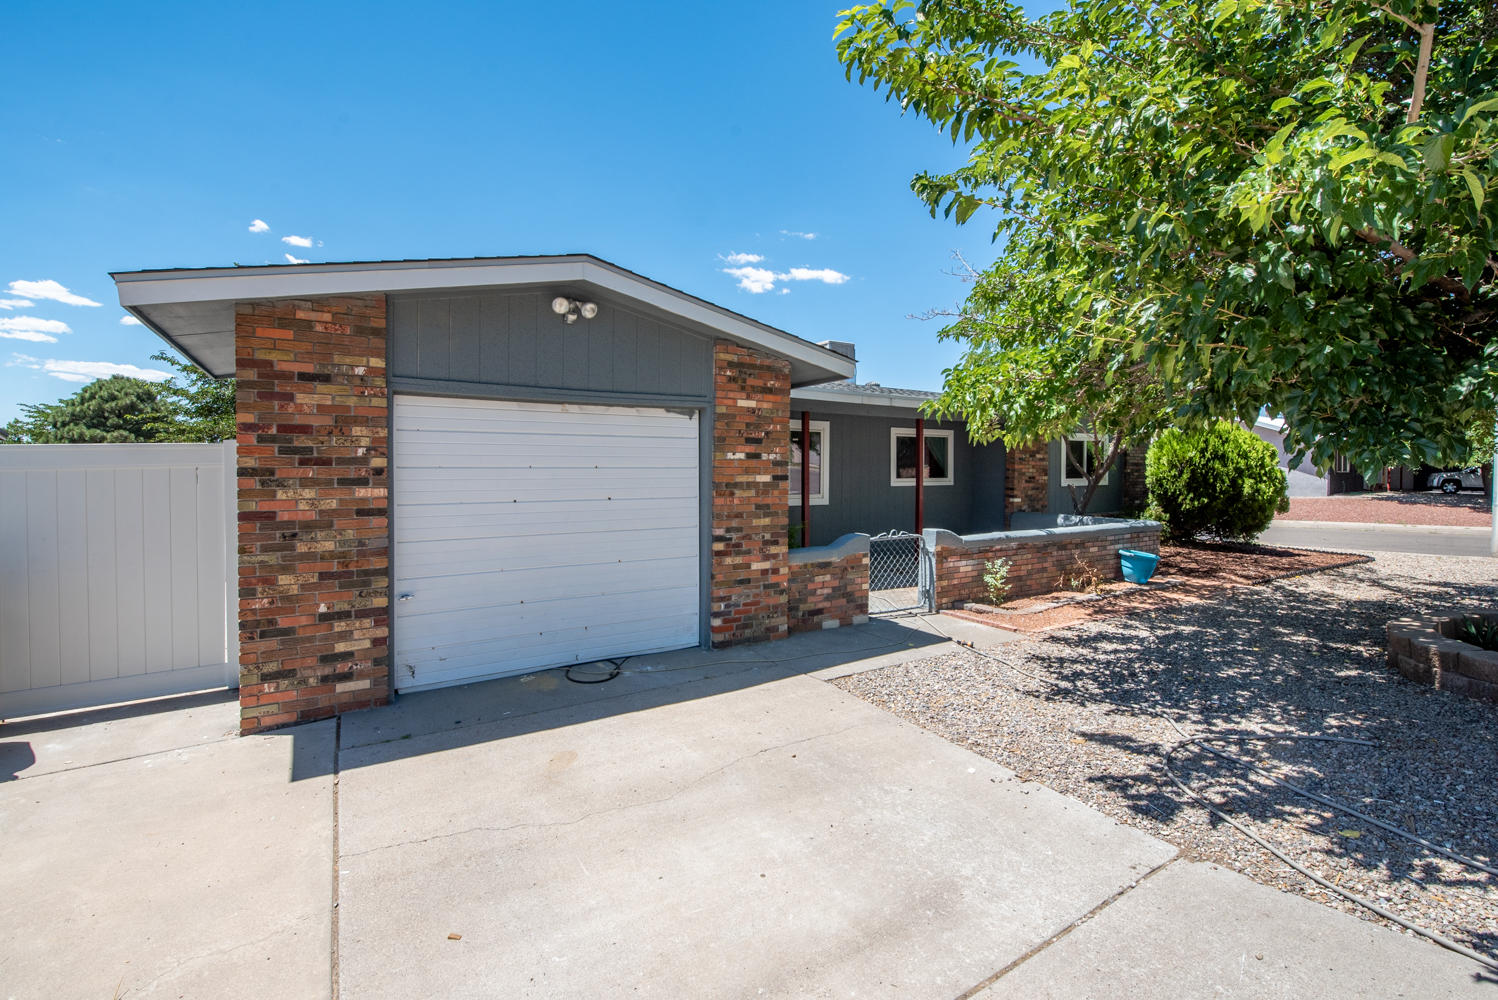 *** Open House - Sunday, August 2nd 11am-1pm *** Broker will unlock the home and be out front allowing Buyers to come by and see the house and answer any questions. Hand sanitizer will be provide - Please wear a mask and practice social distancing. First come first serve, broker will limit number of people who can see the property at a time. Come and see this wonderful home in NE Heights with easy access to amenities and near major roads. Newer features include, roof, furnace, hot water heater, flooring, kitchen cabinets and countertops and fencing around the yard and many more.  Yard is ready for your vision and the home is nicely laid out and ready for you to come and make it your own. Come and see it today!